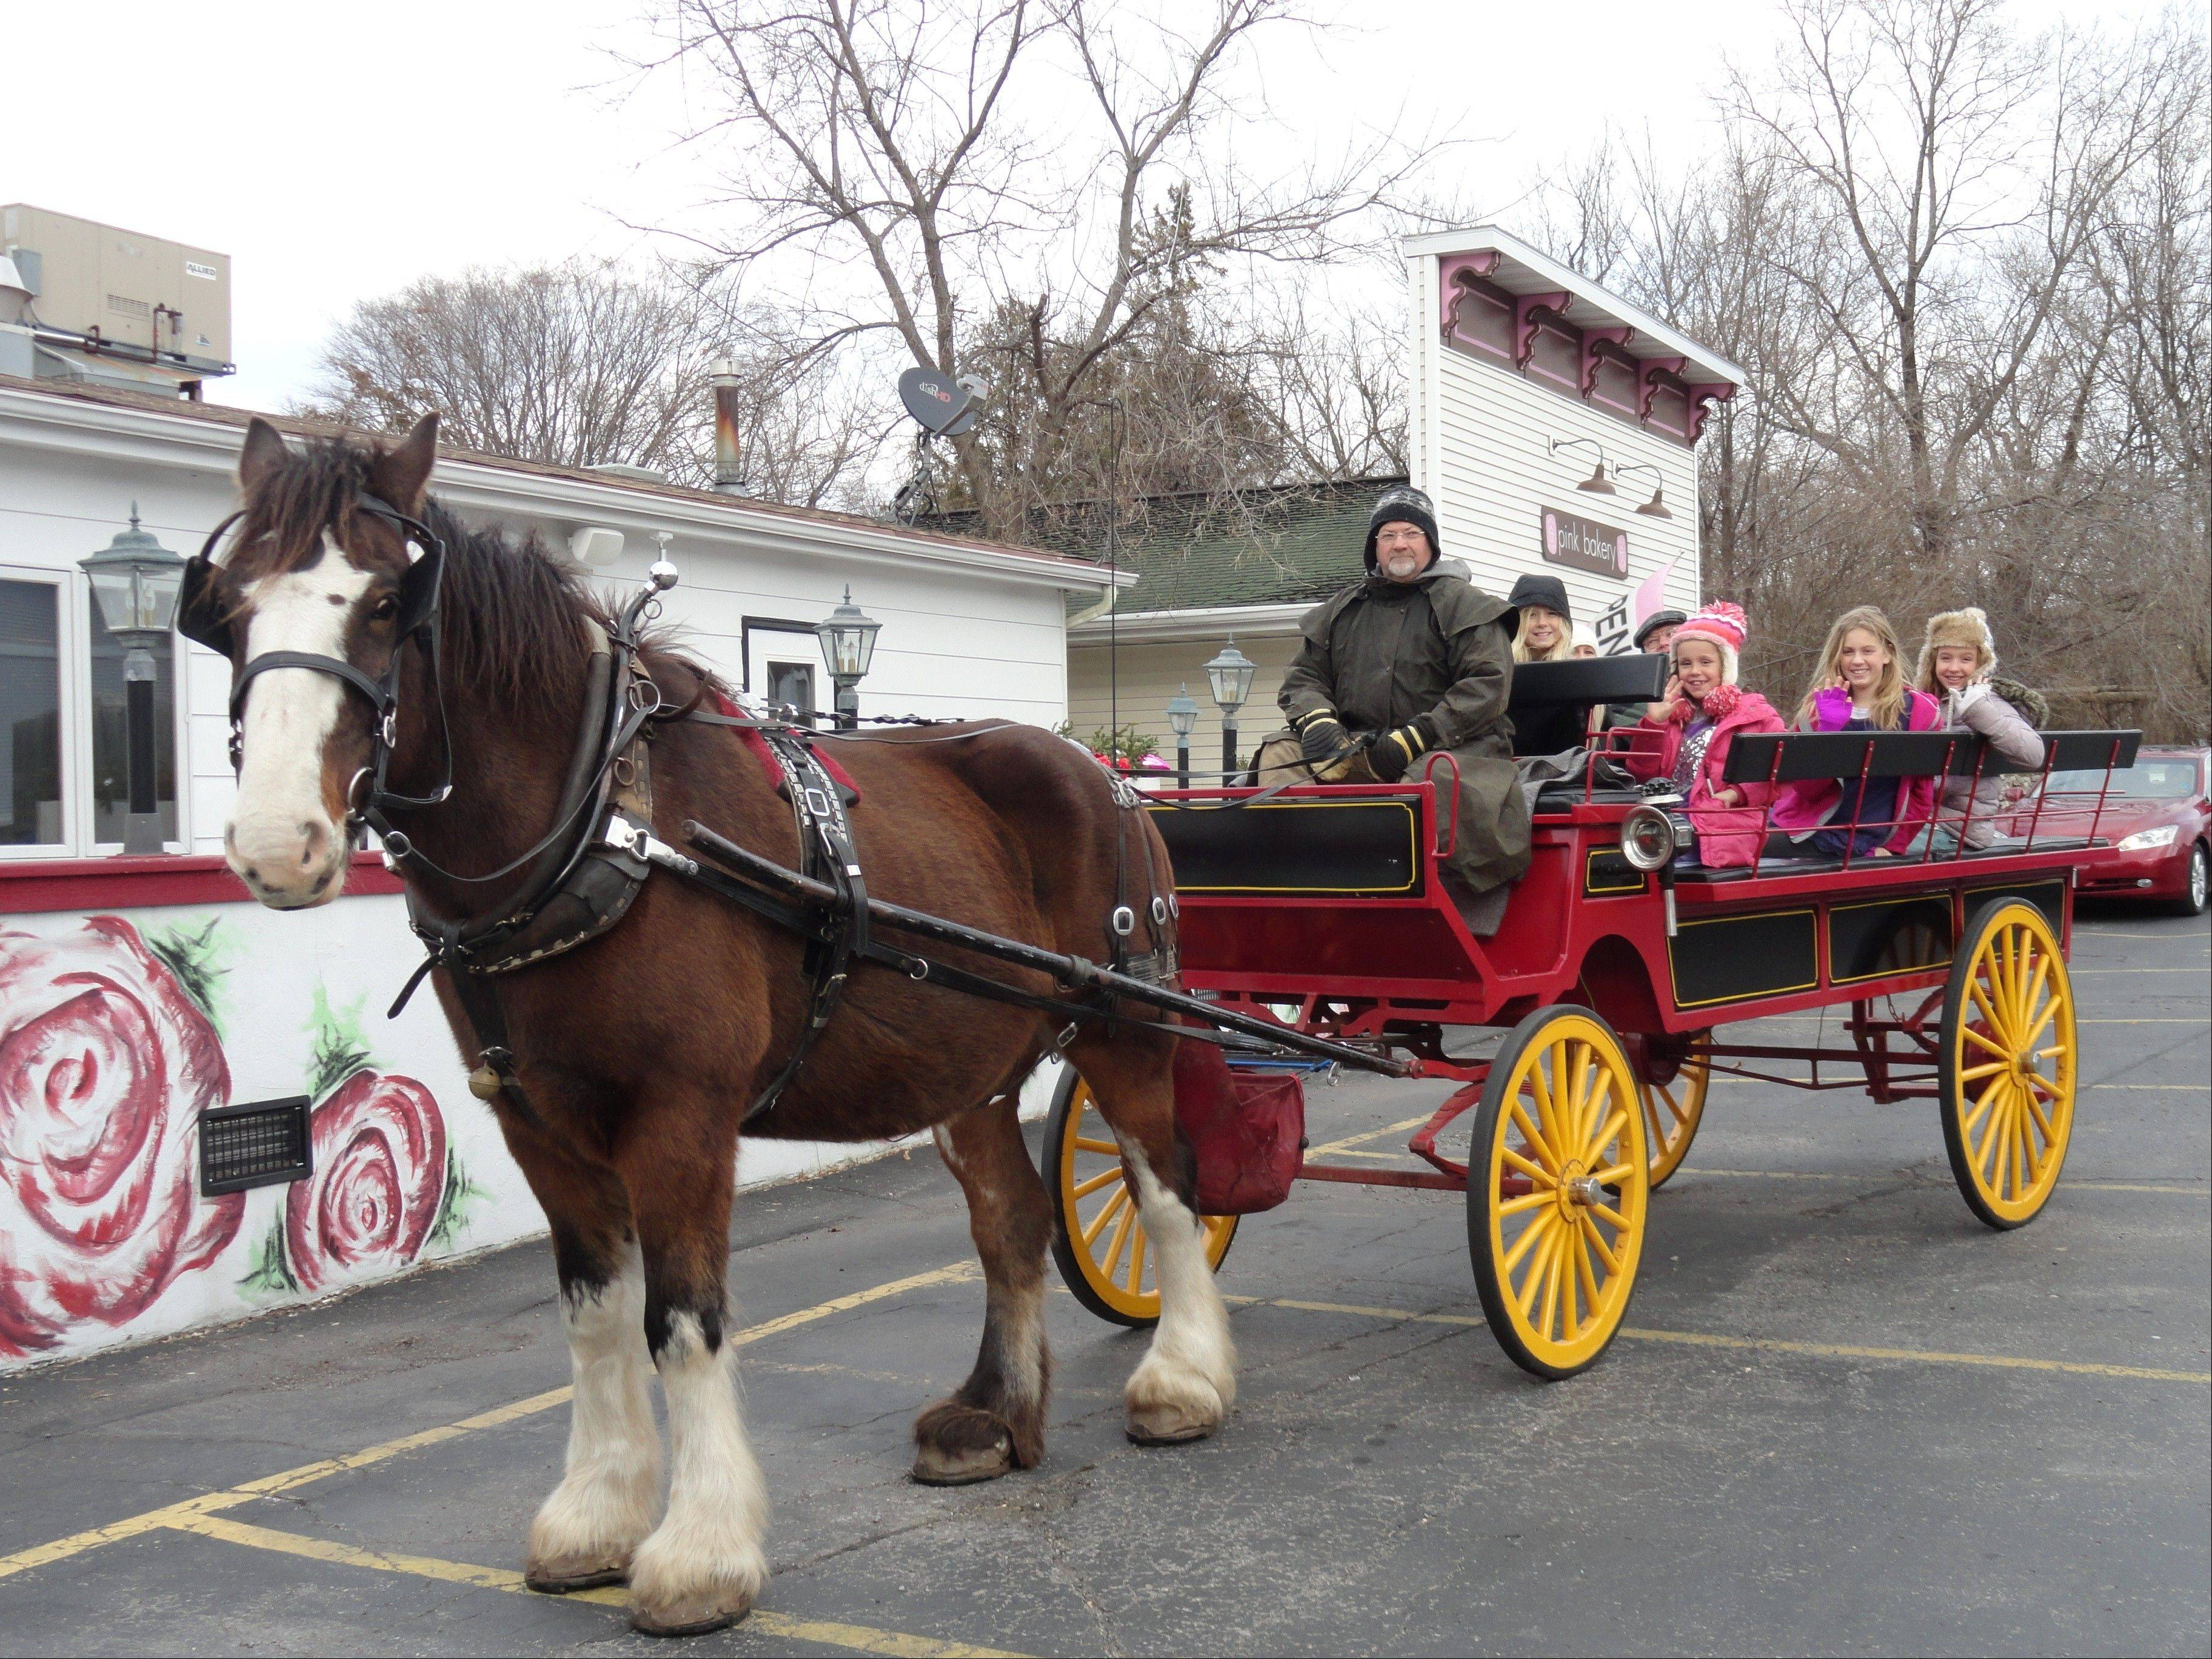 Holly Days offers another reason to visit Door County. The Egg Harbor event includes lots of kids' activities, shopping opportunities, theater performances, caroling and horse-drawn wagon rides. Nov. 29-30.